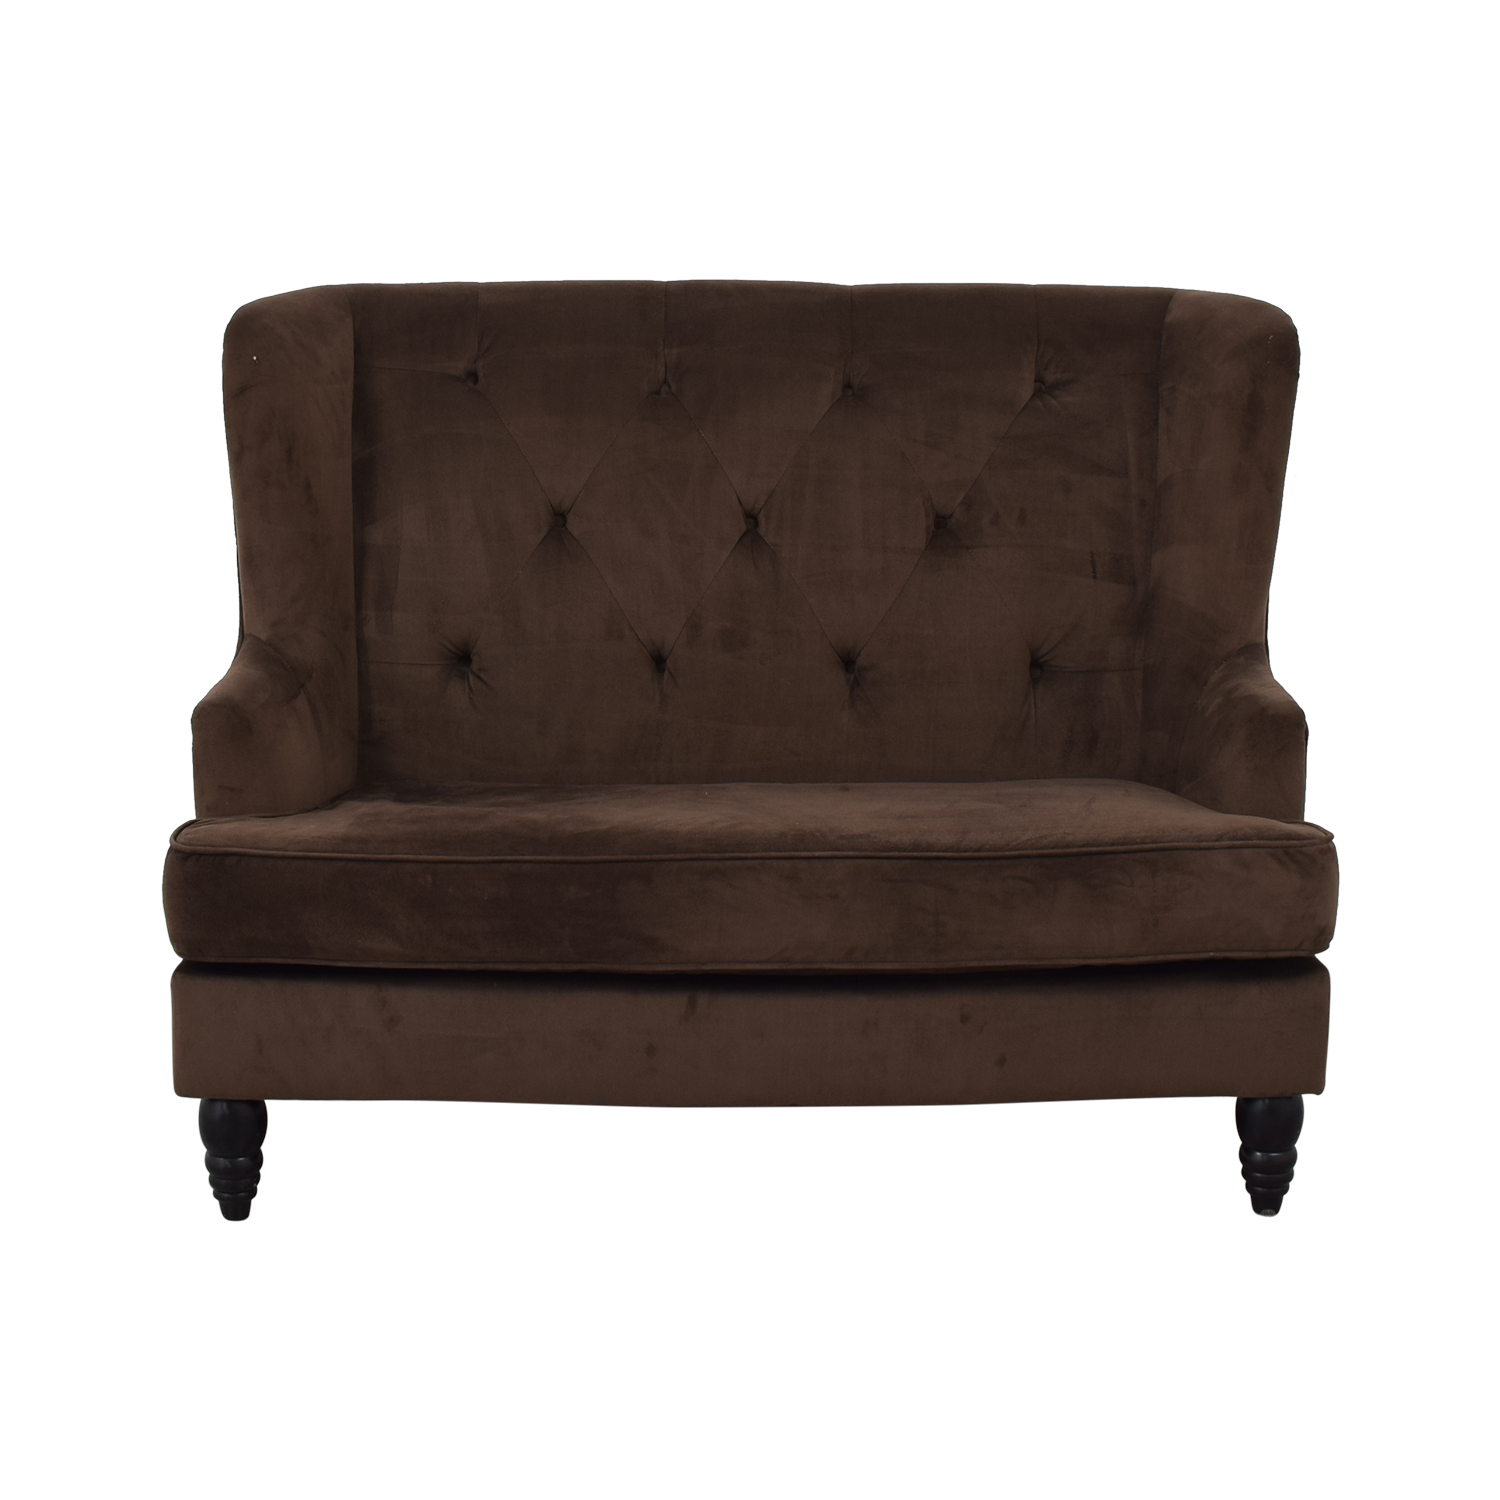 Brown Tufted High Back Loveseat used